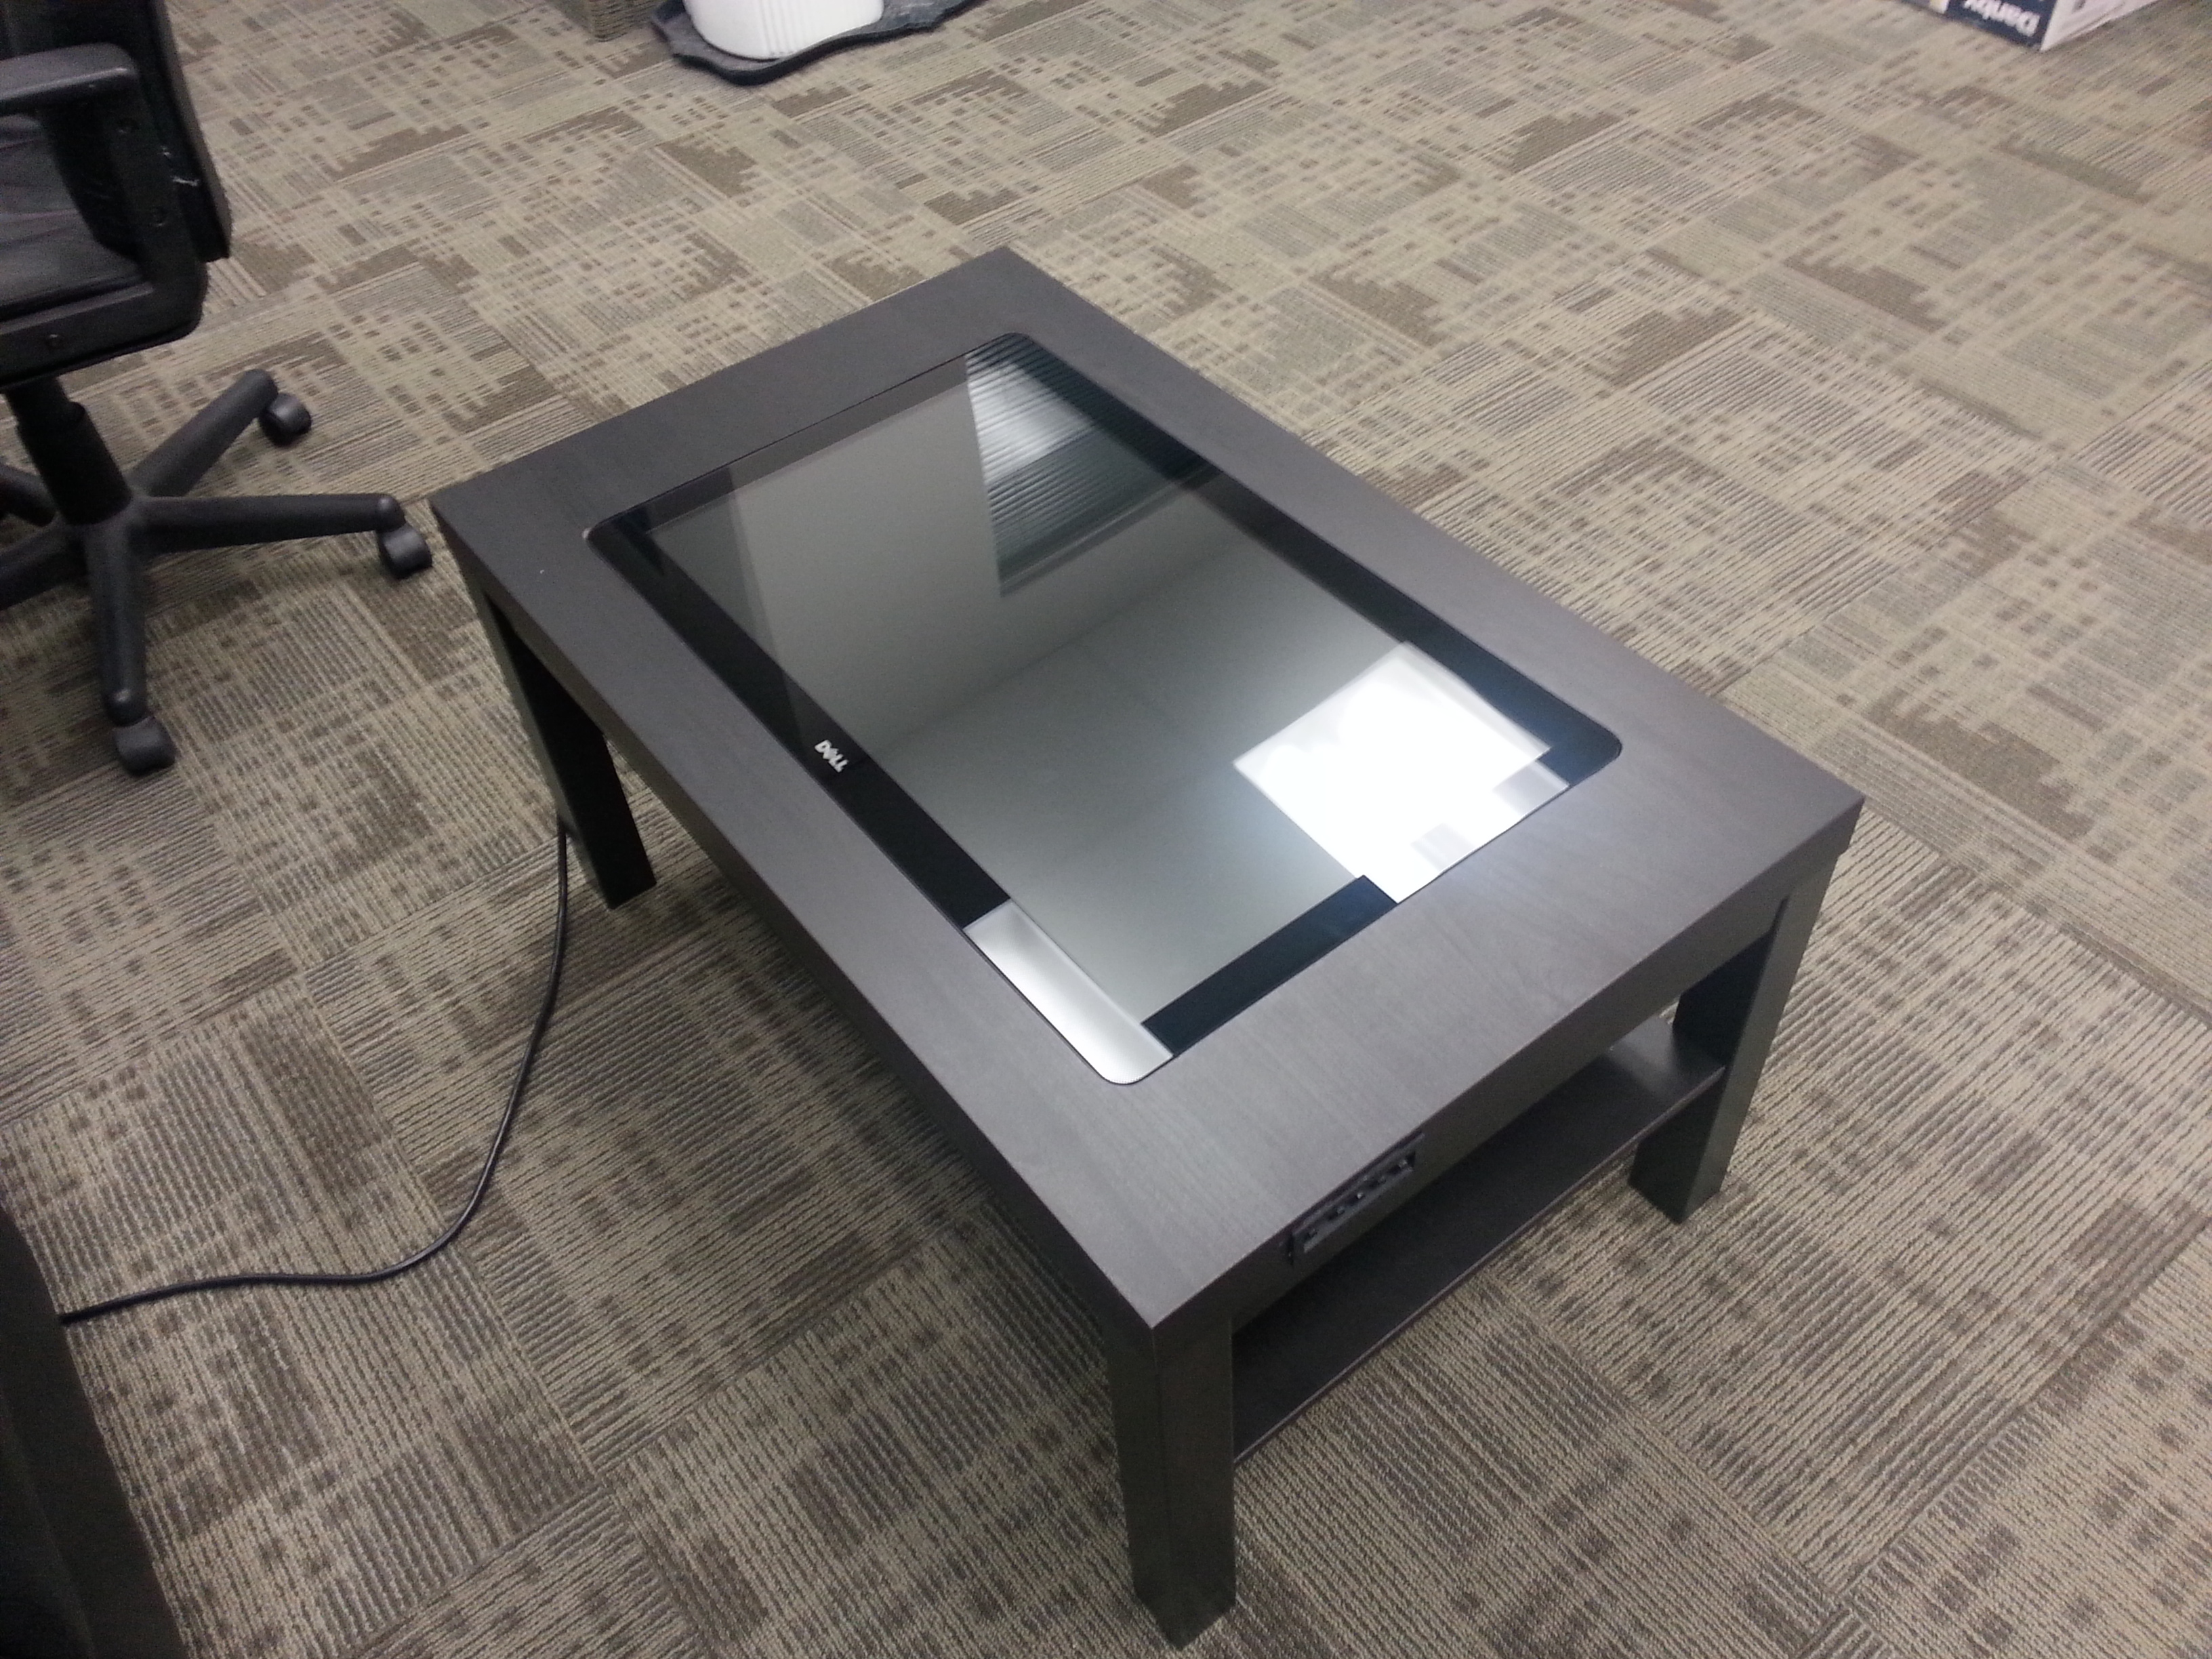 We ve Gone and Built a Touchscreen Coffee Table